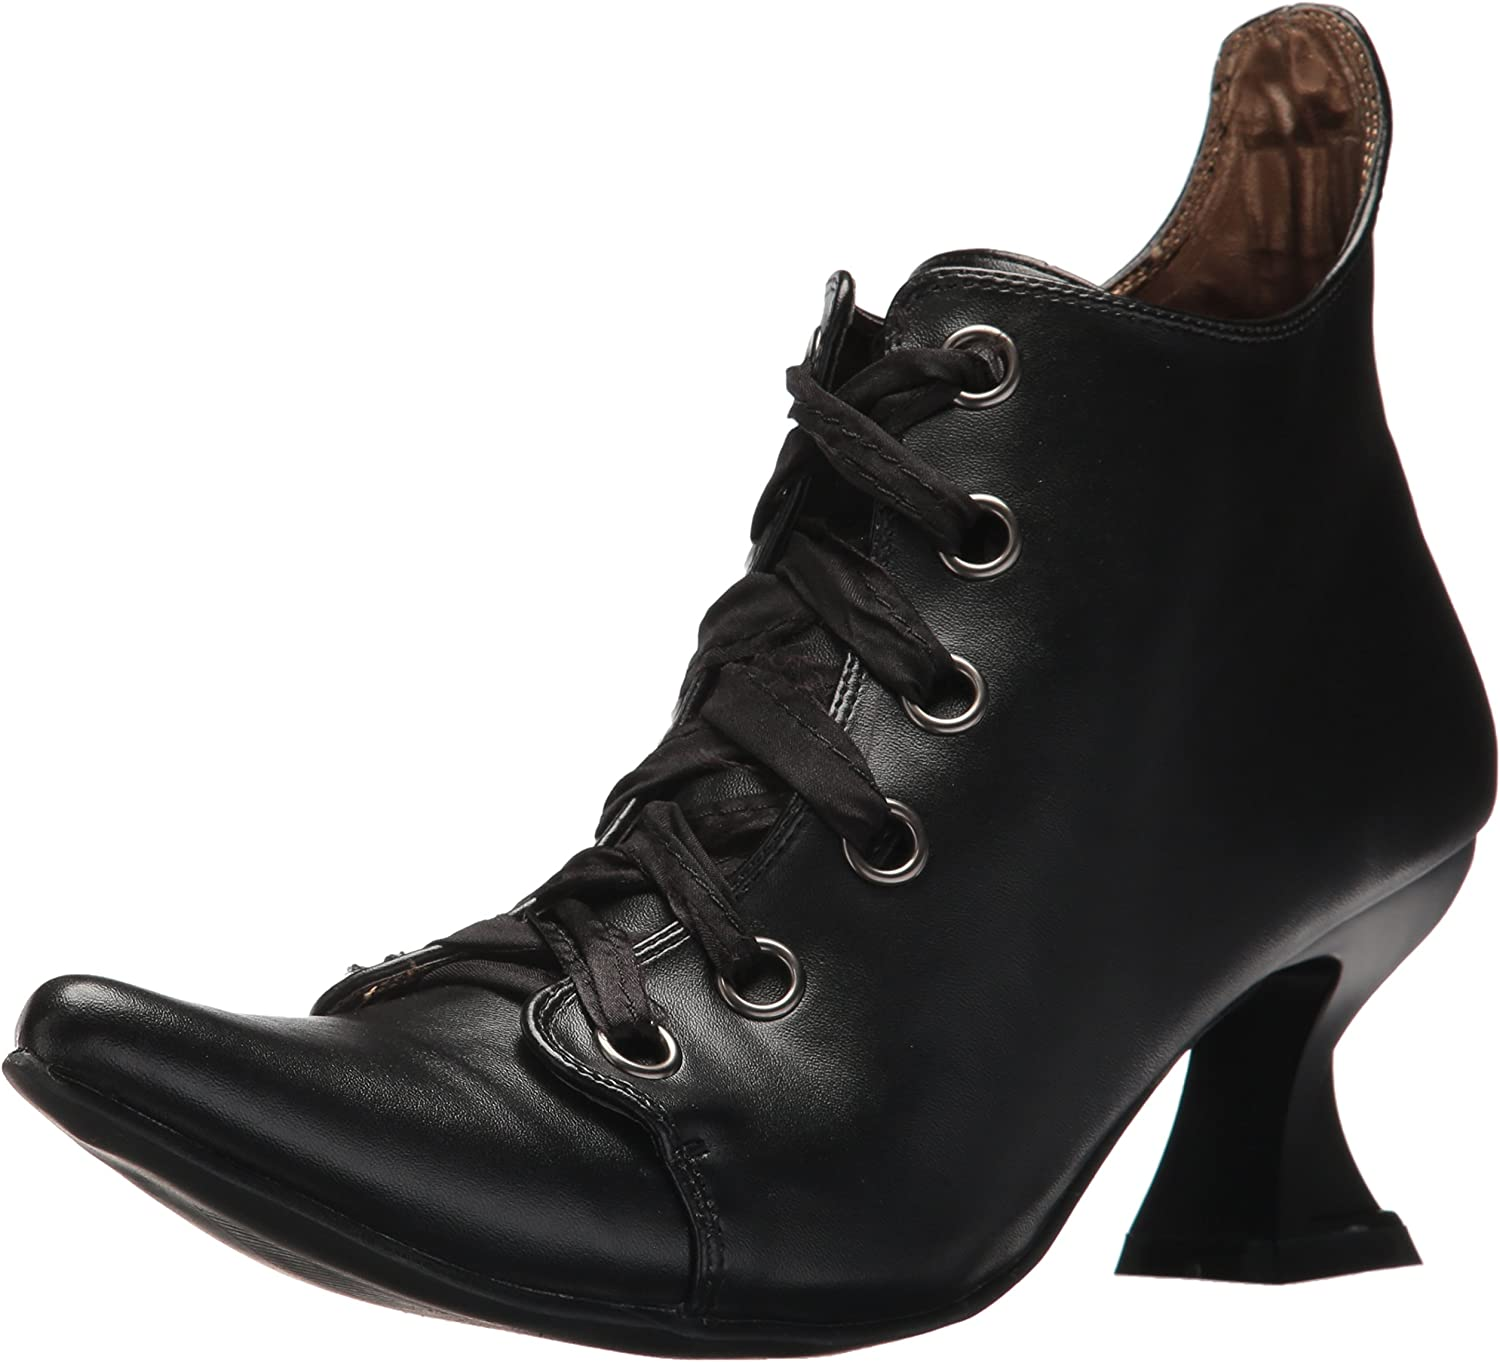 Womens Black Witch Costume Boots Size 8